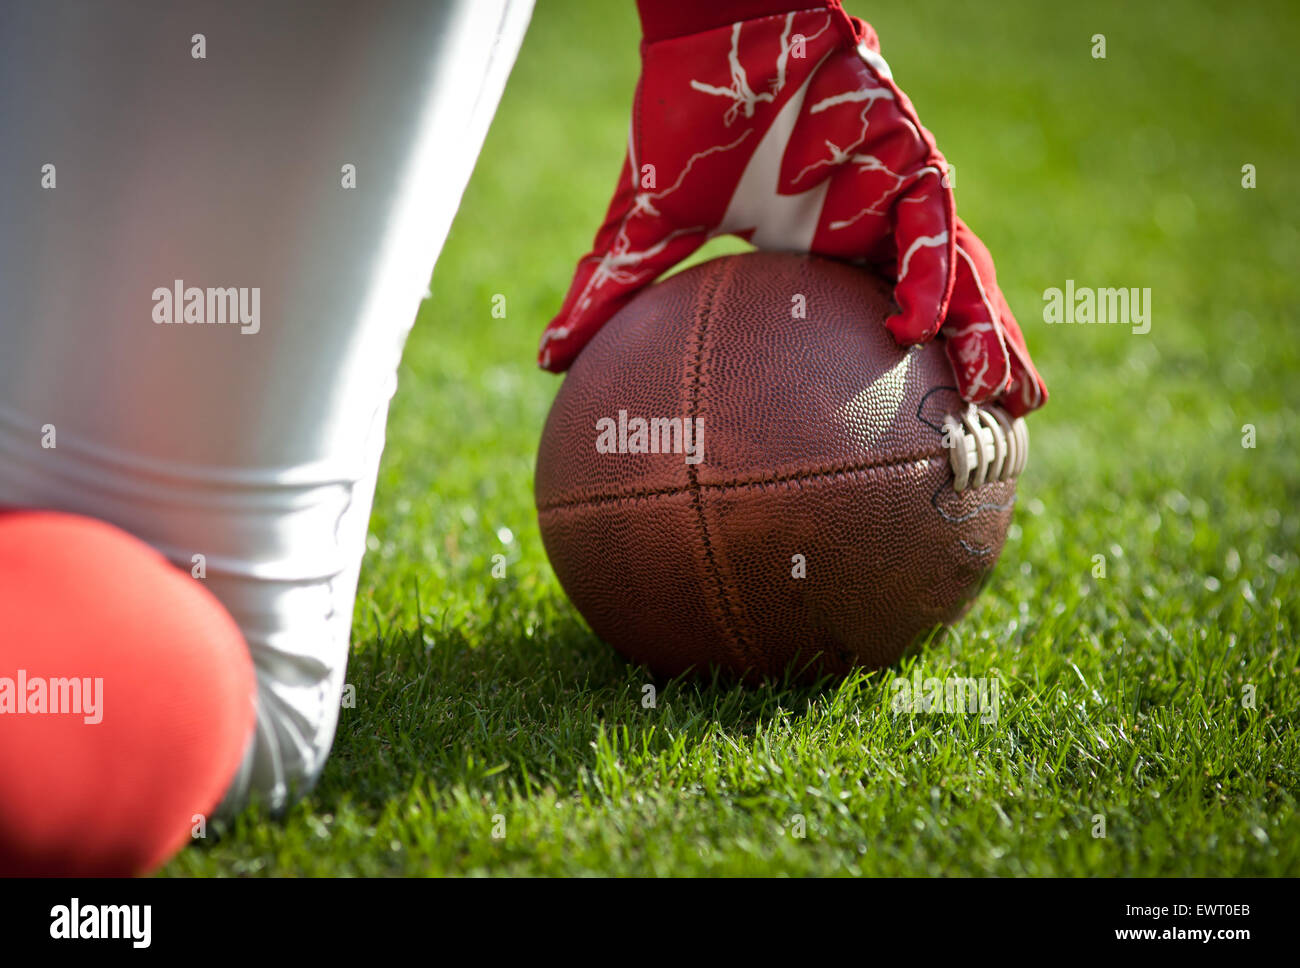 american football game - sport concept - Stock Image